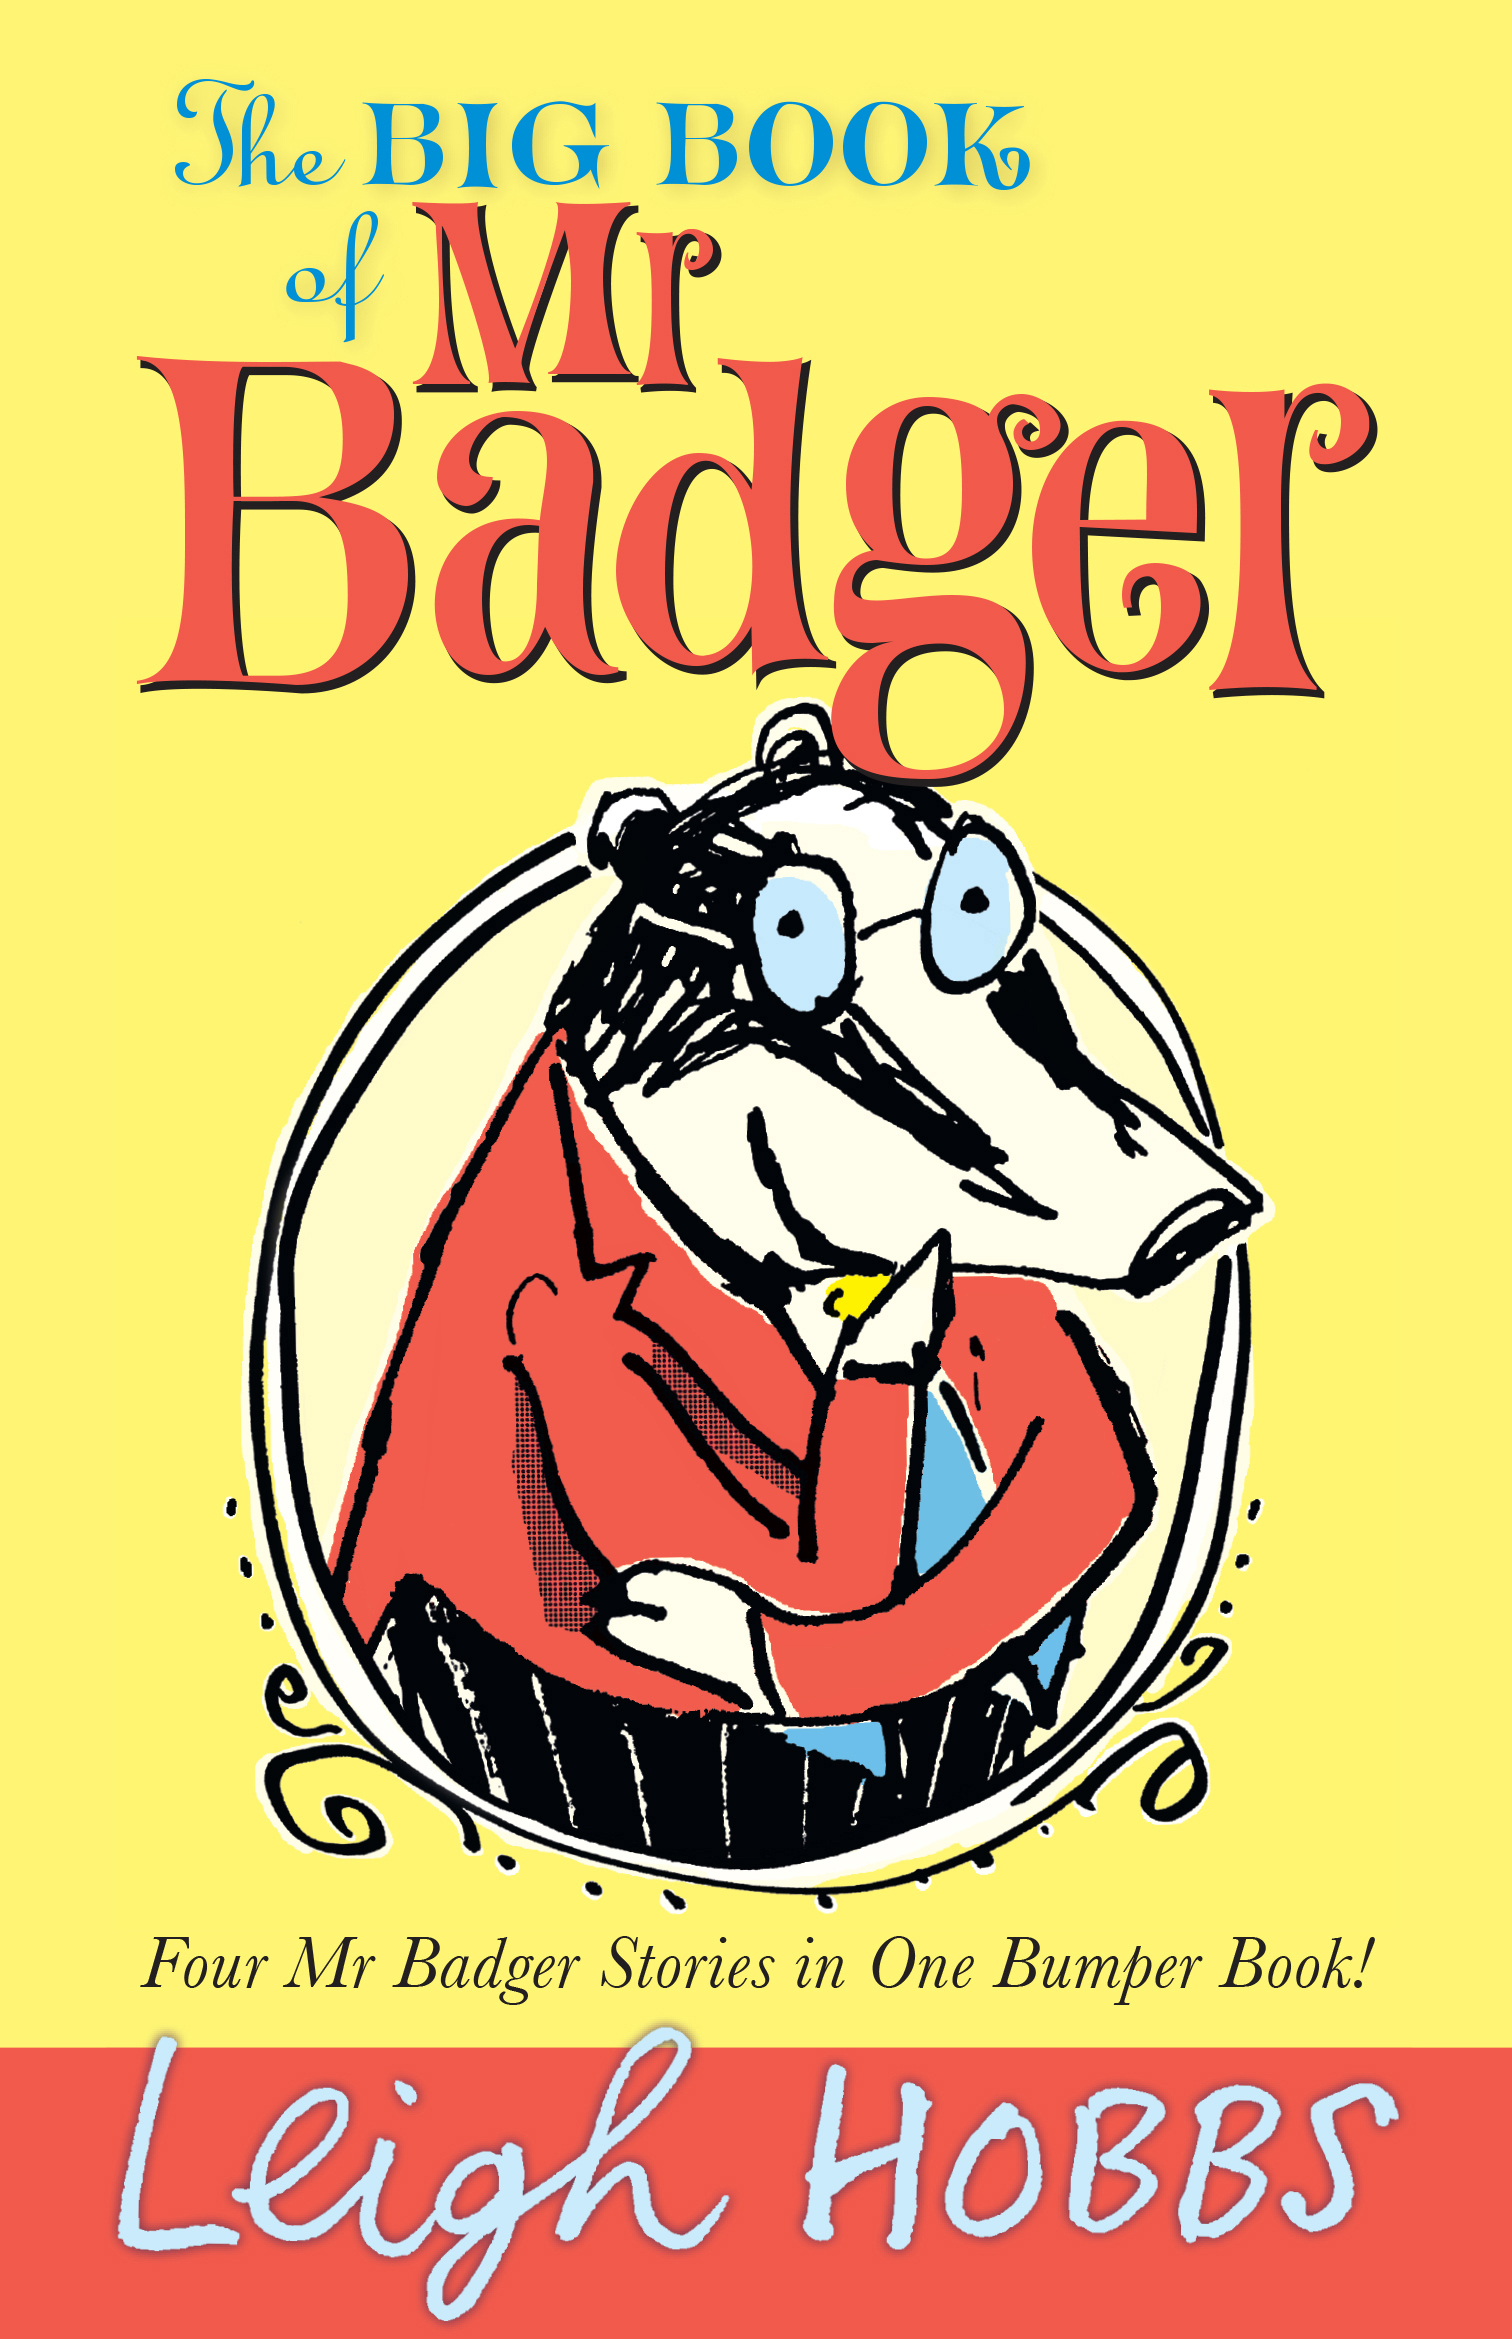 The Big Book of MR BadgerMR Badger